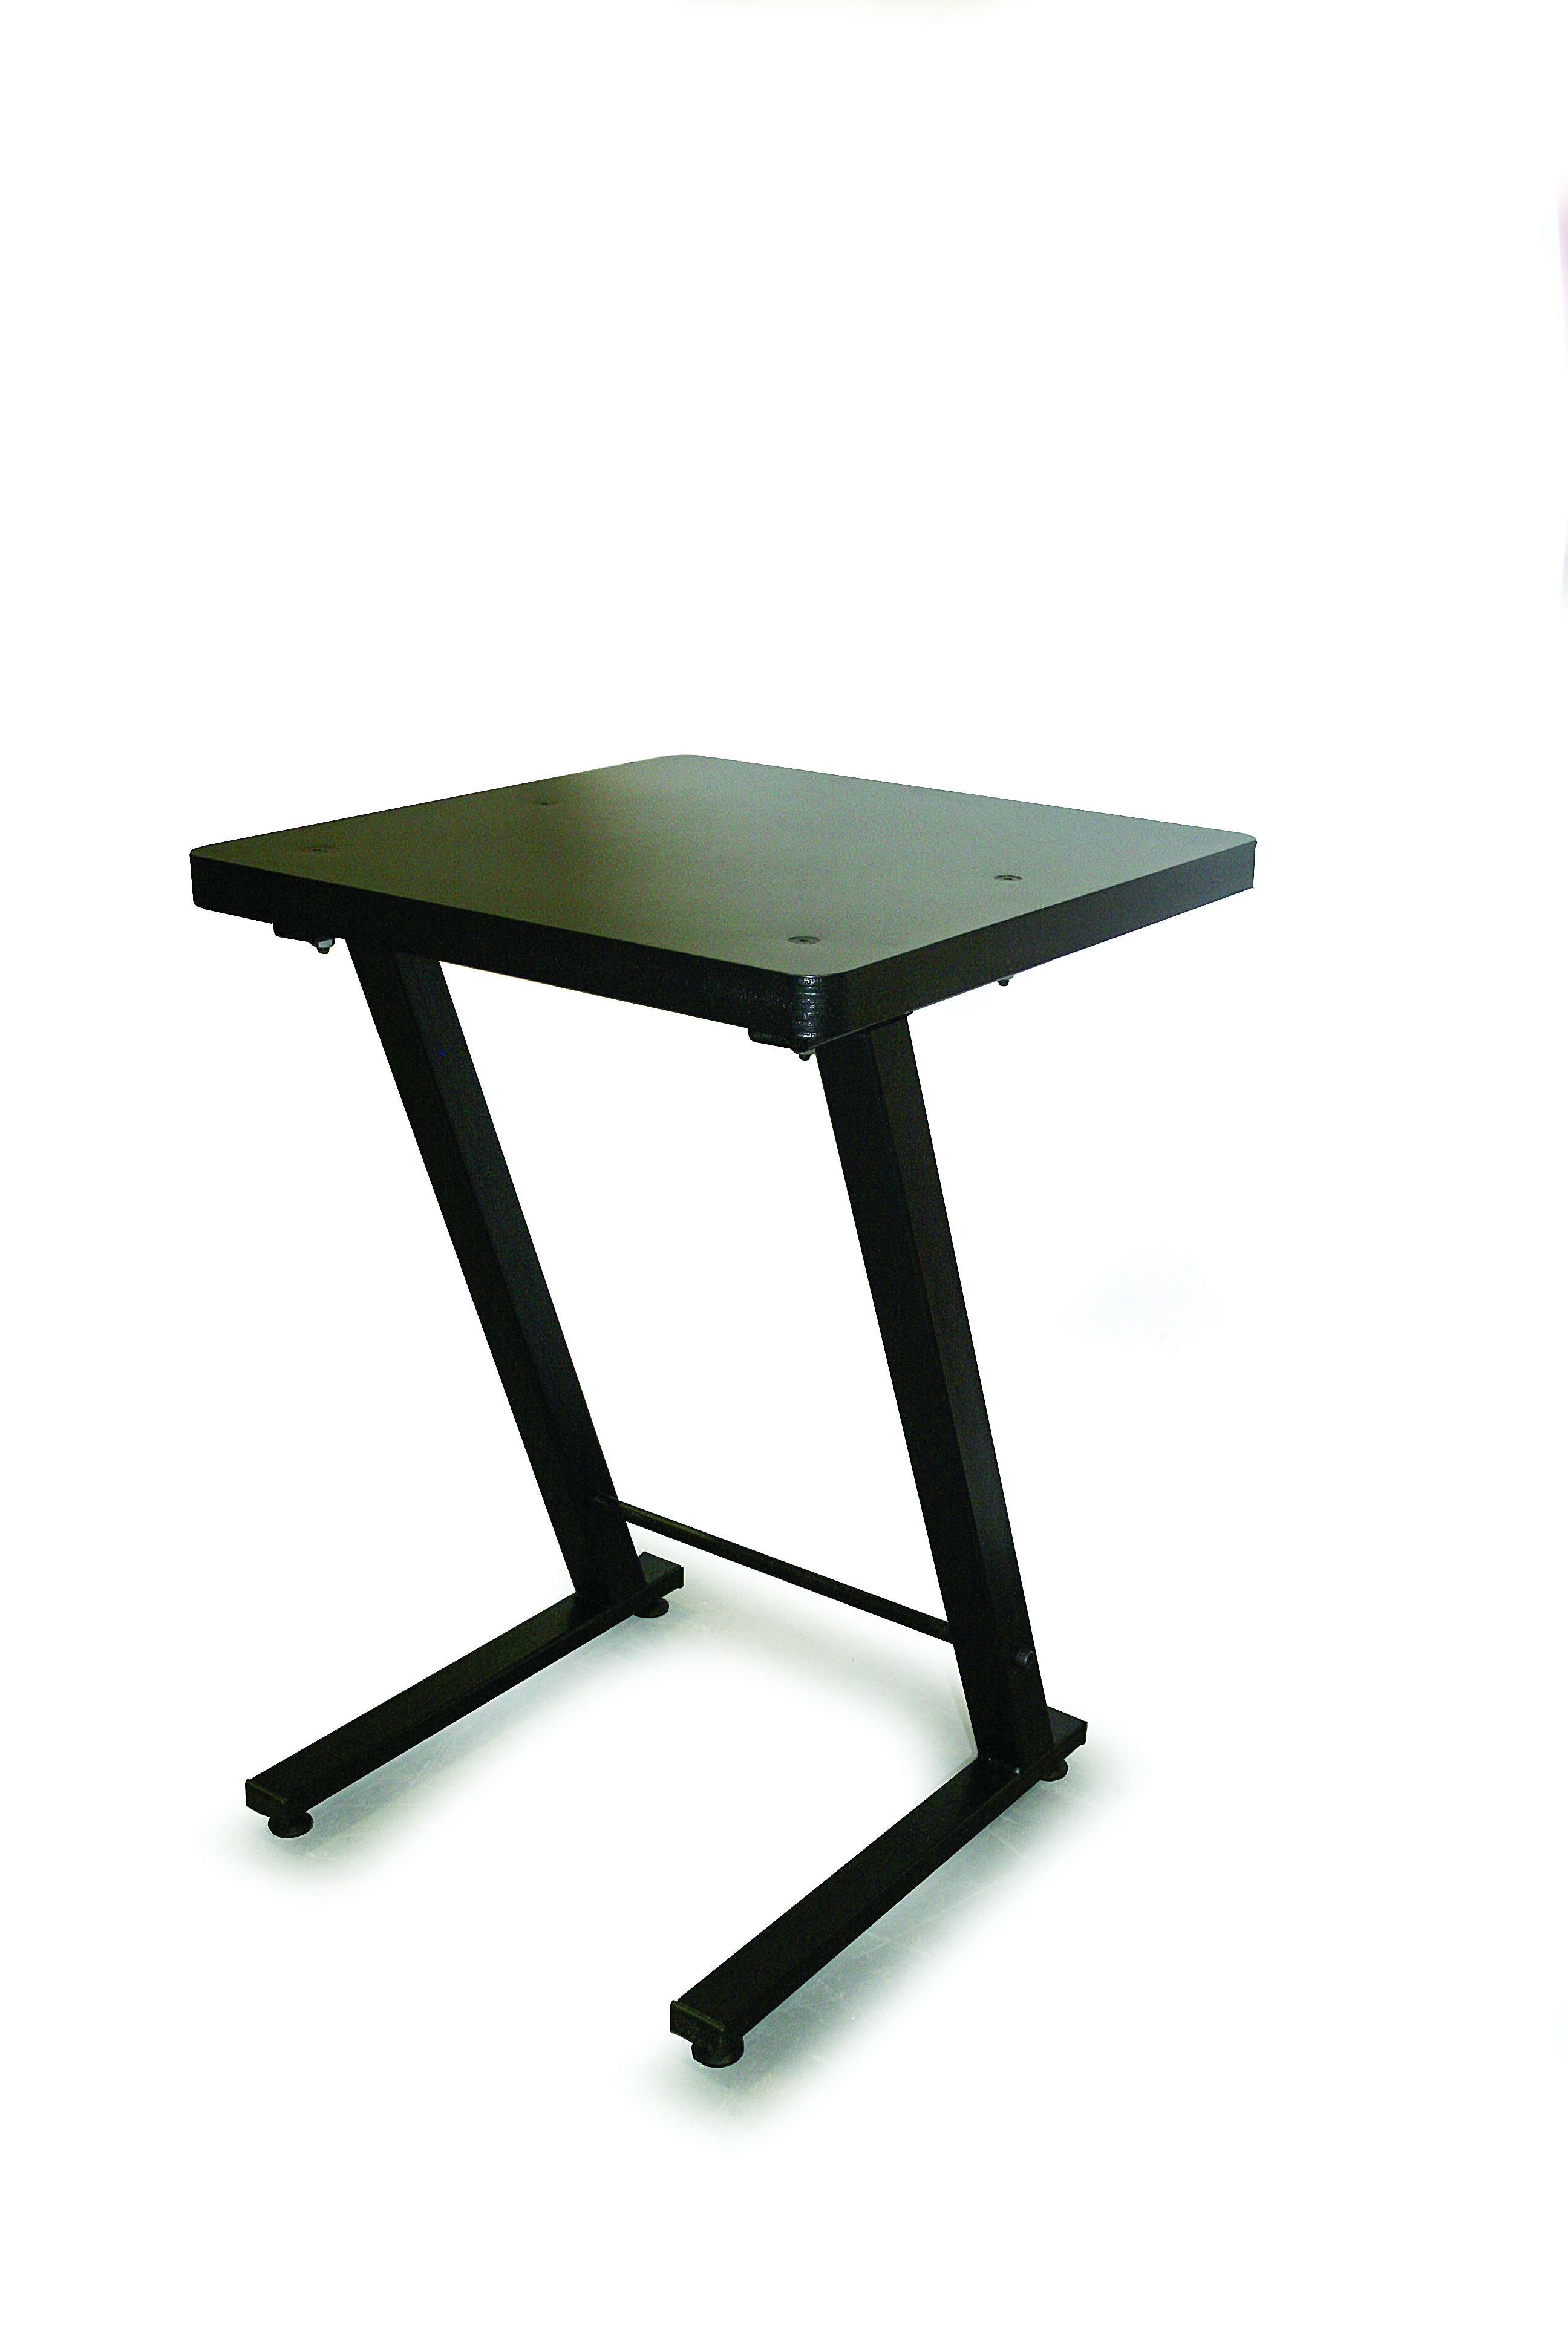 TABLE FOR AP1 MACHINE SELF ASSEMBLY